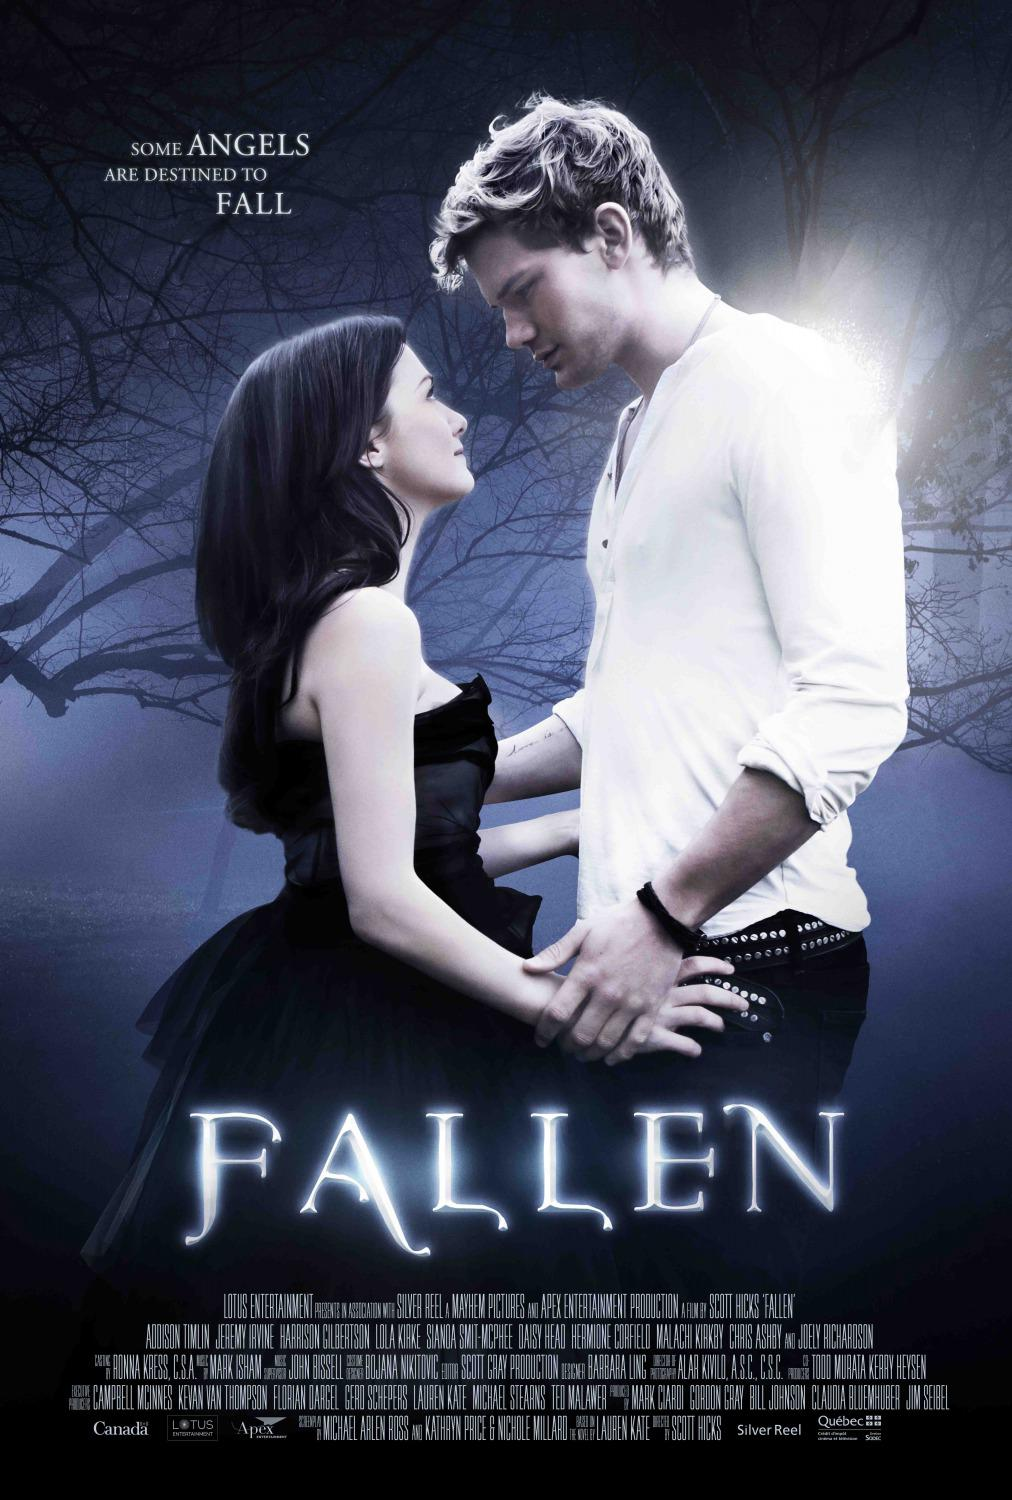 Film - Fallen - poster - some Angels are destined to fall